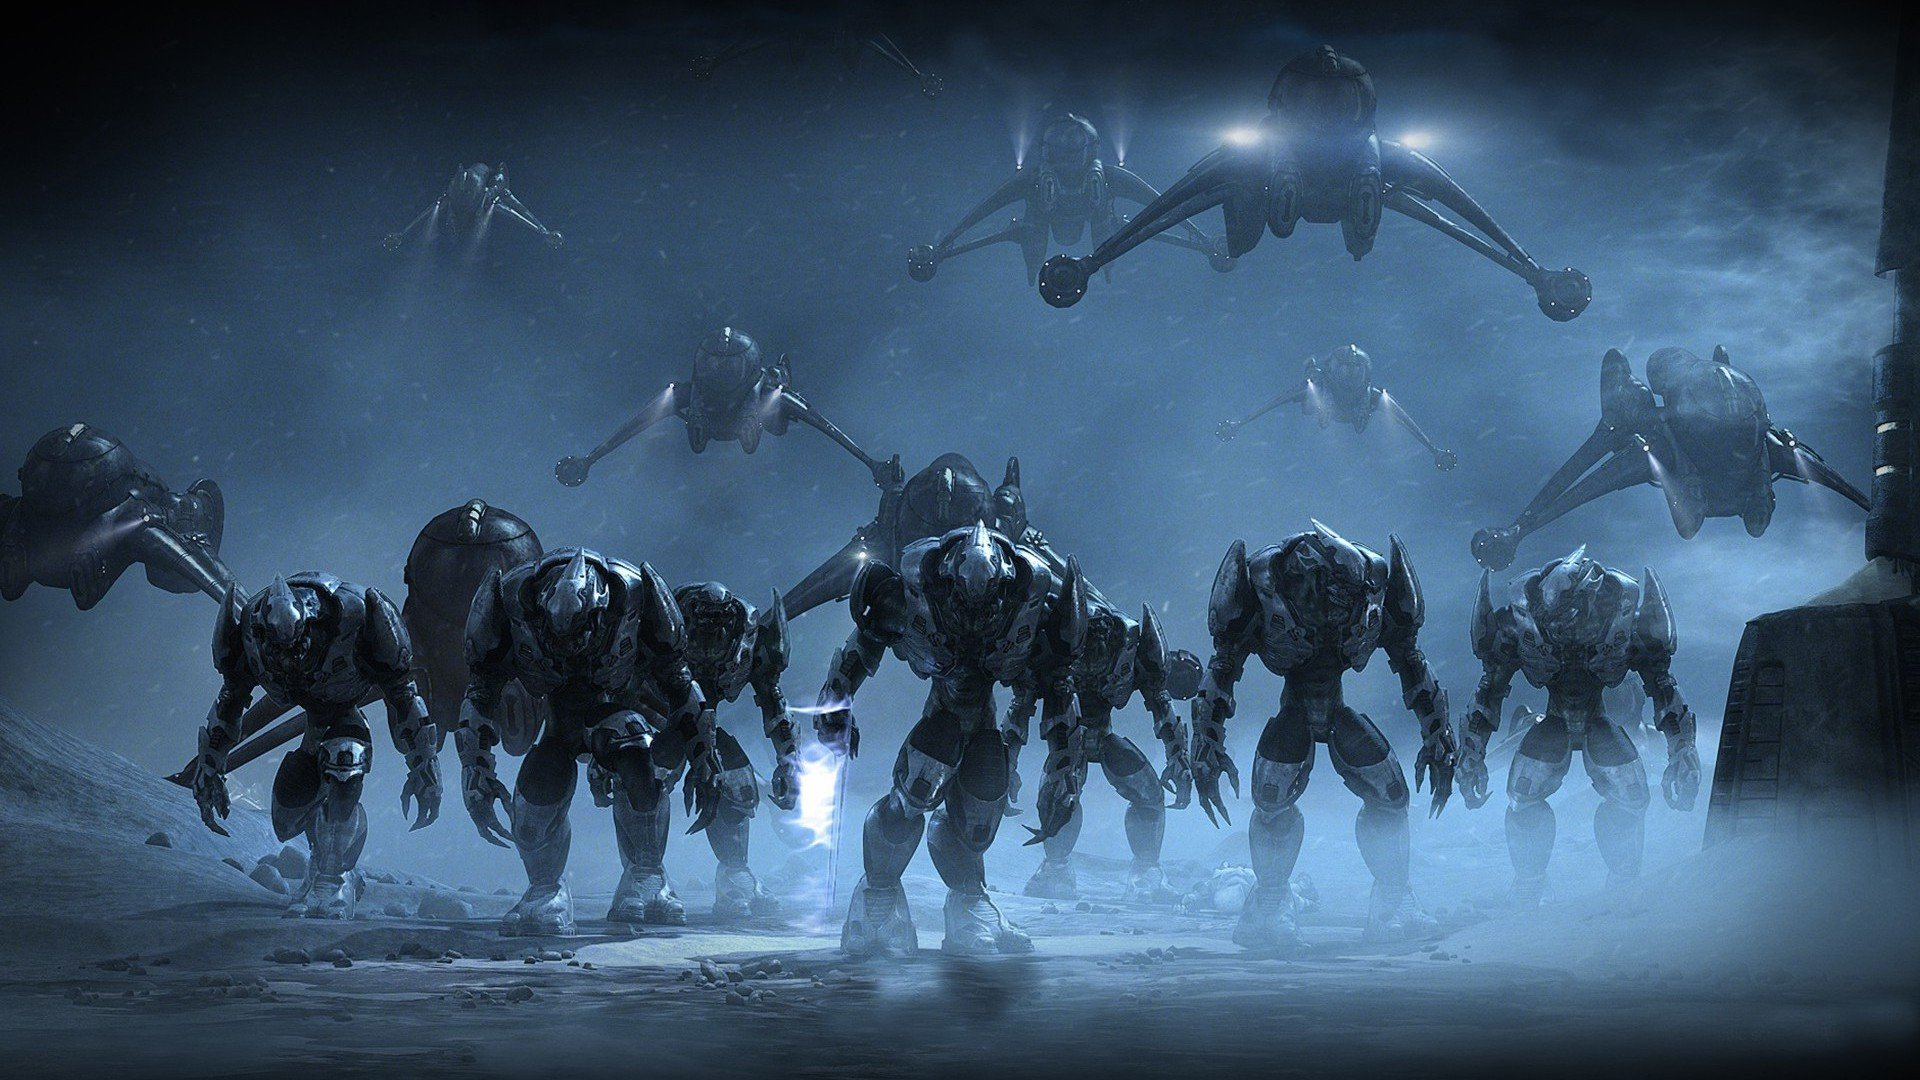 Download Full Hd 1080p Halo Wars Pc Wallpaper Id307507 For Free